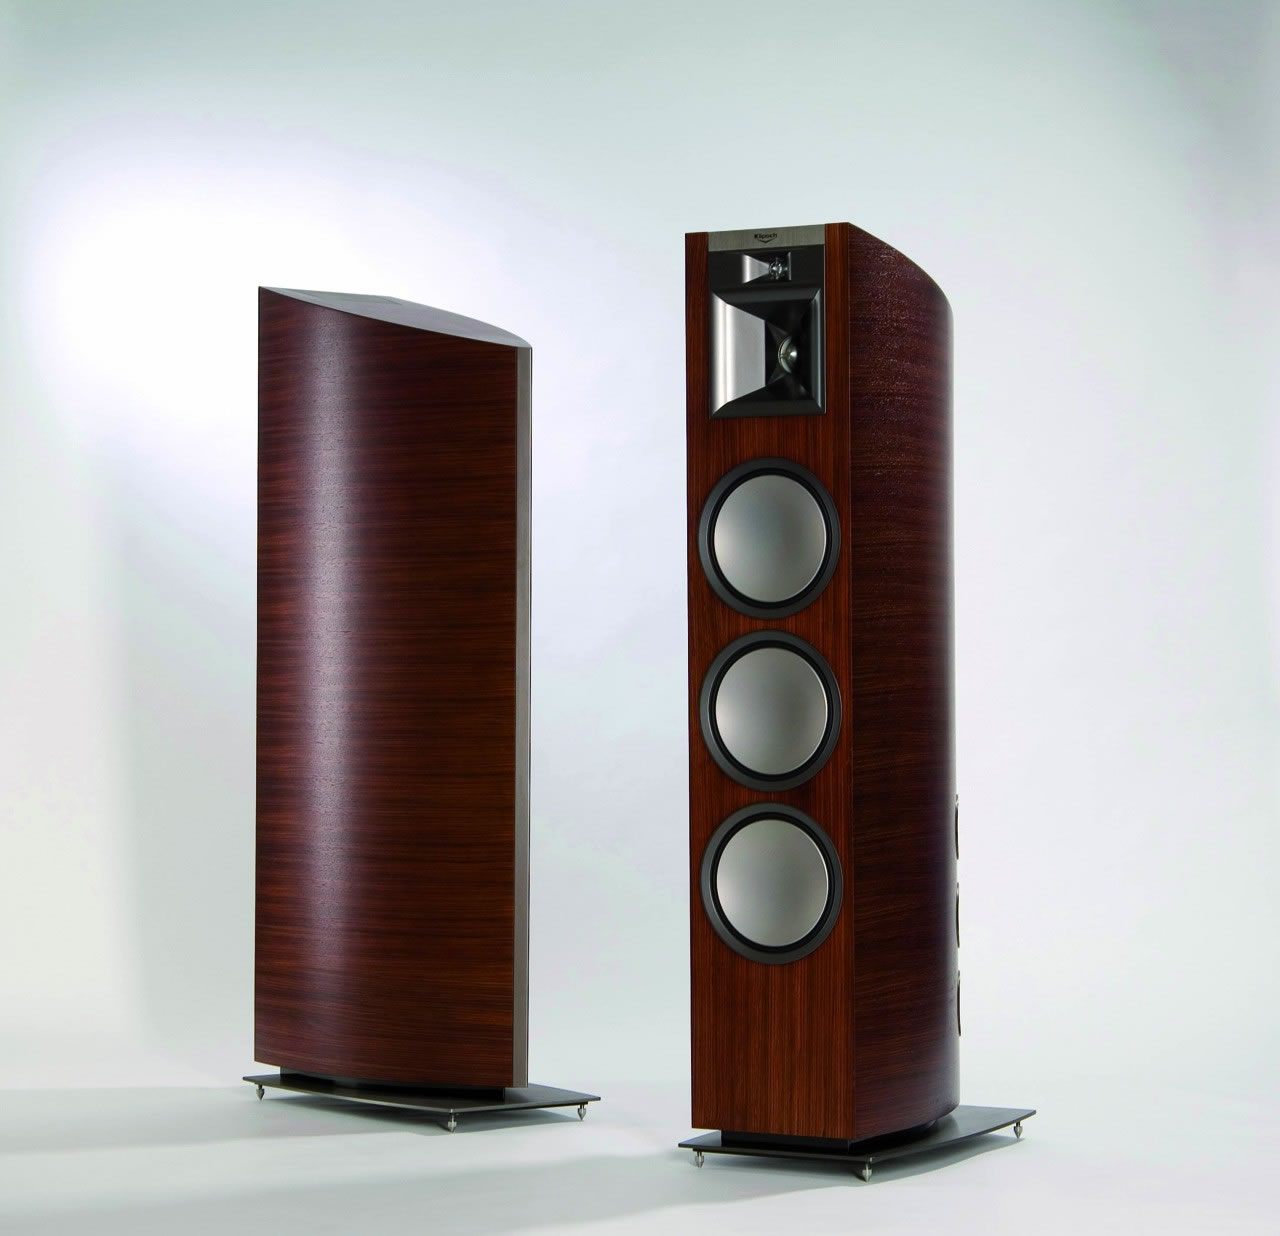 klipsch palladium design lautsprecher by bmw group. Black Bedroom Furniture Sets. Home Design Ideas